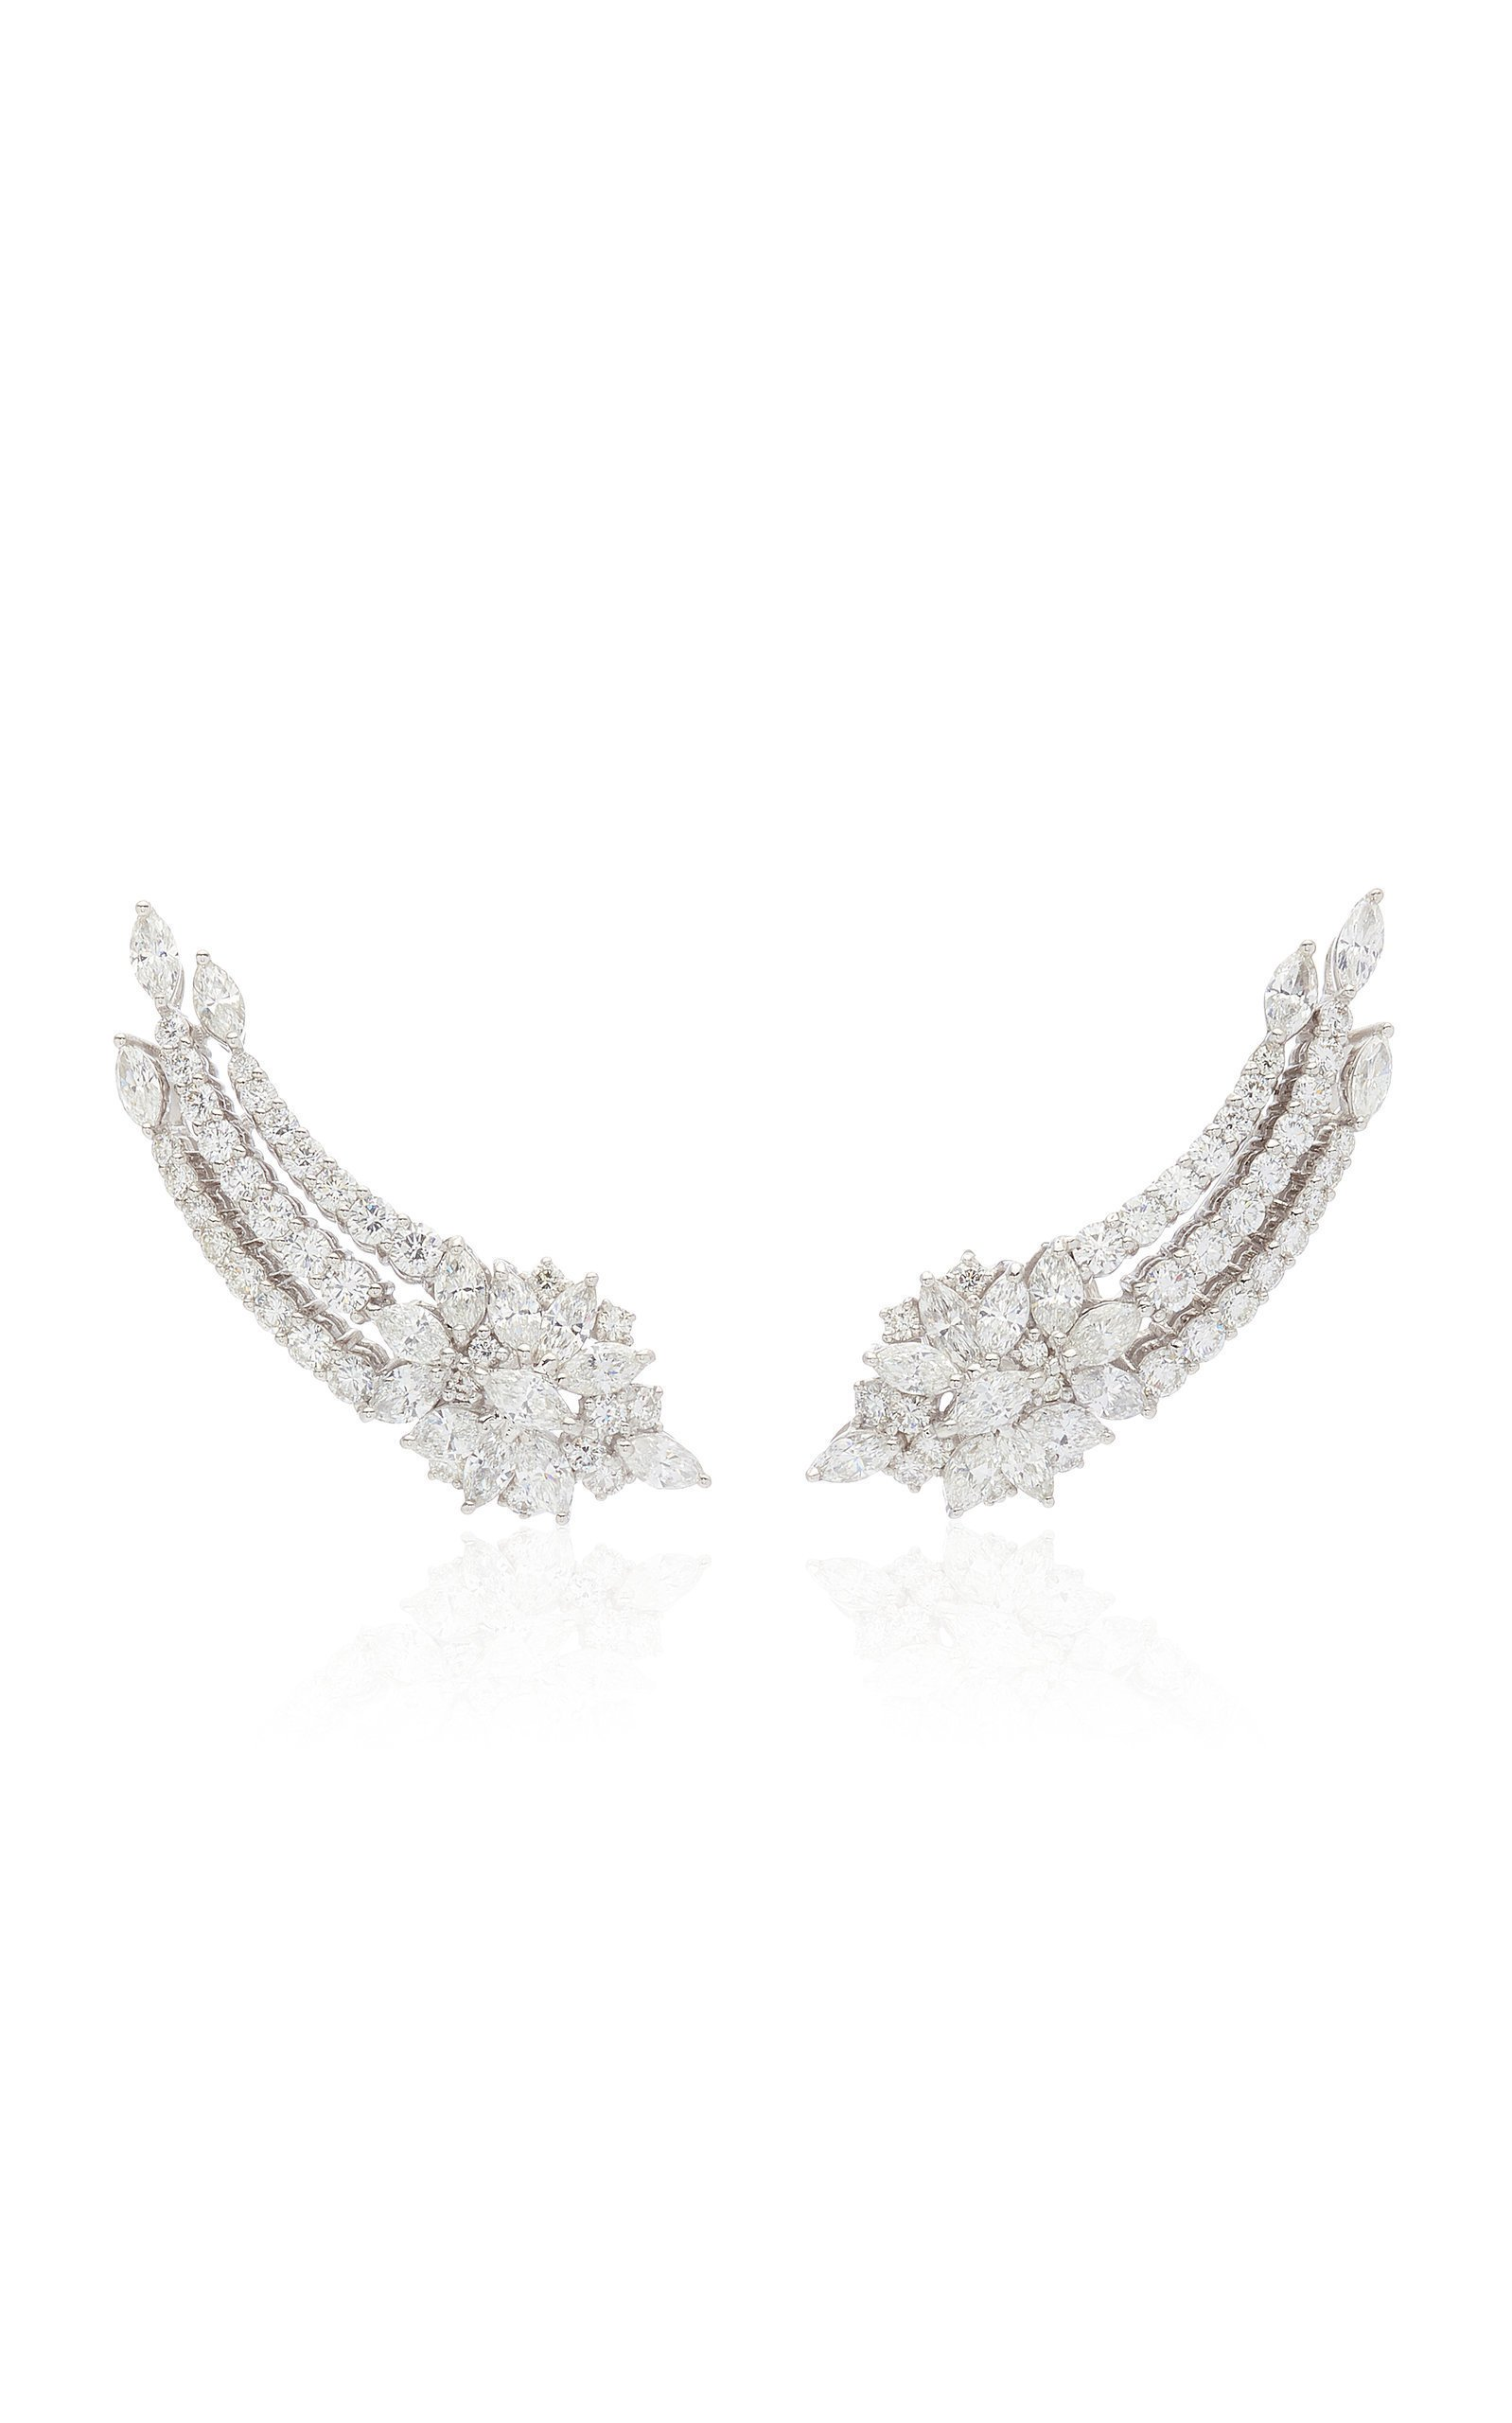 Yeprem 18K White Gold Y-Not Earrings